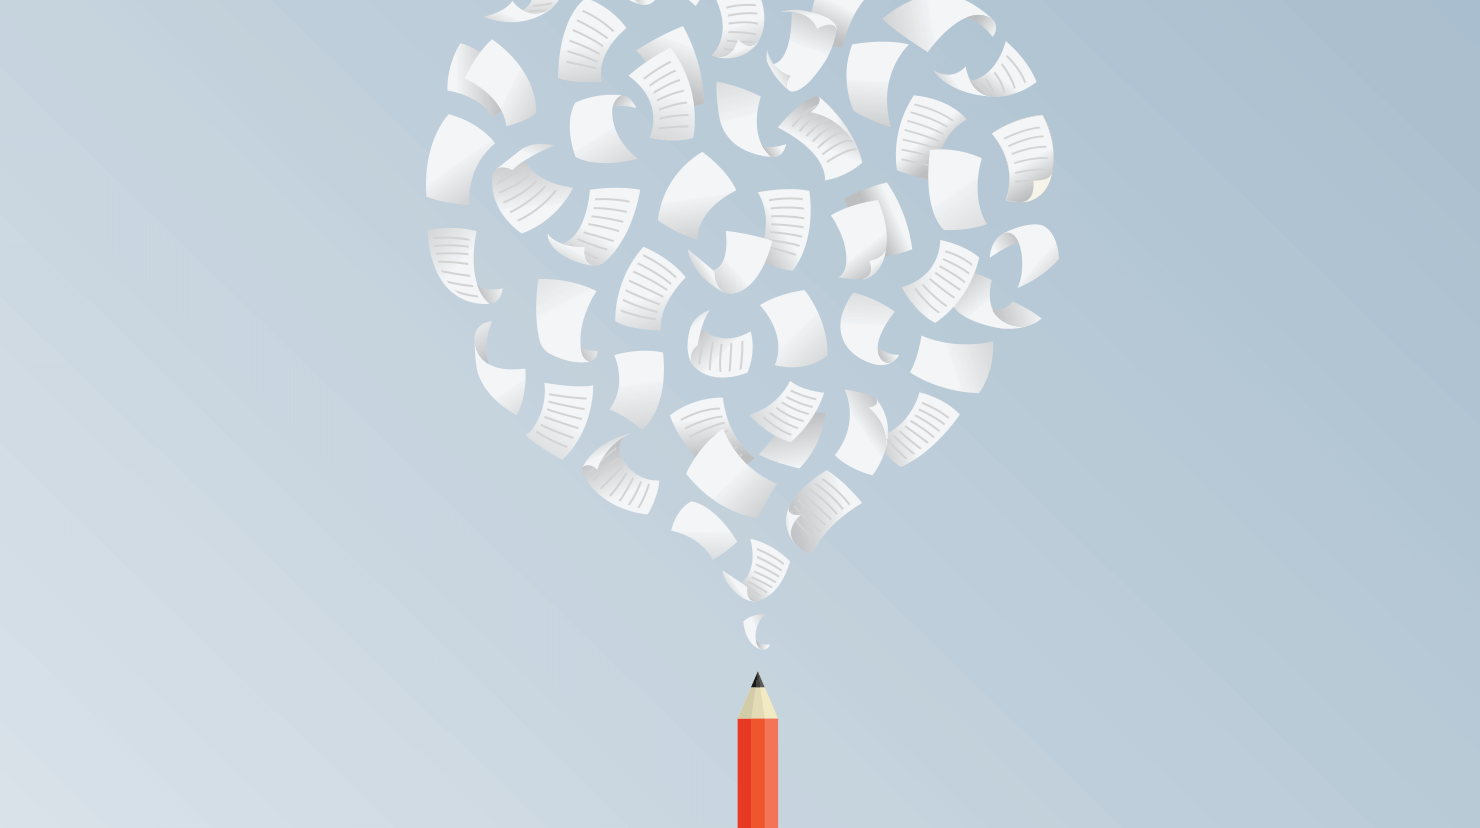 Image of papers and a pencil